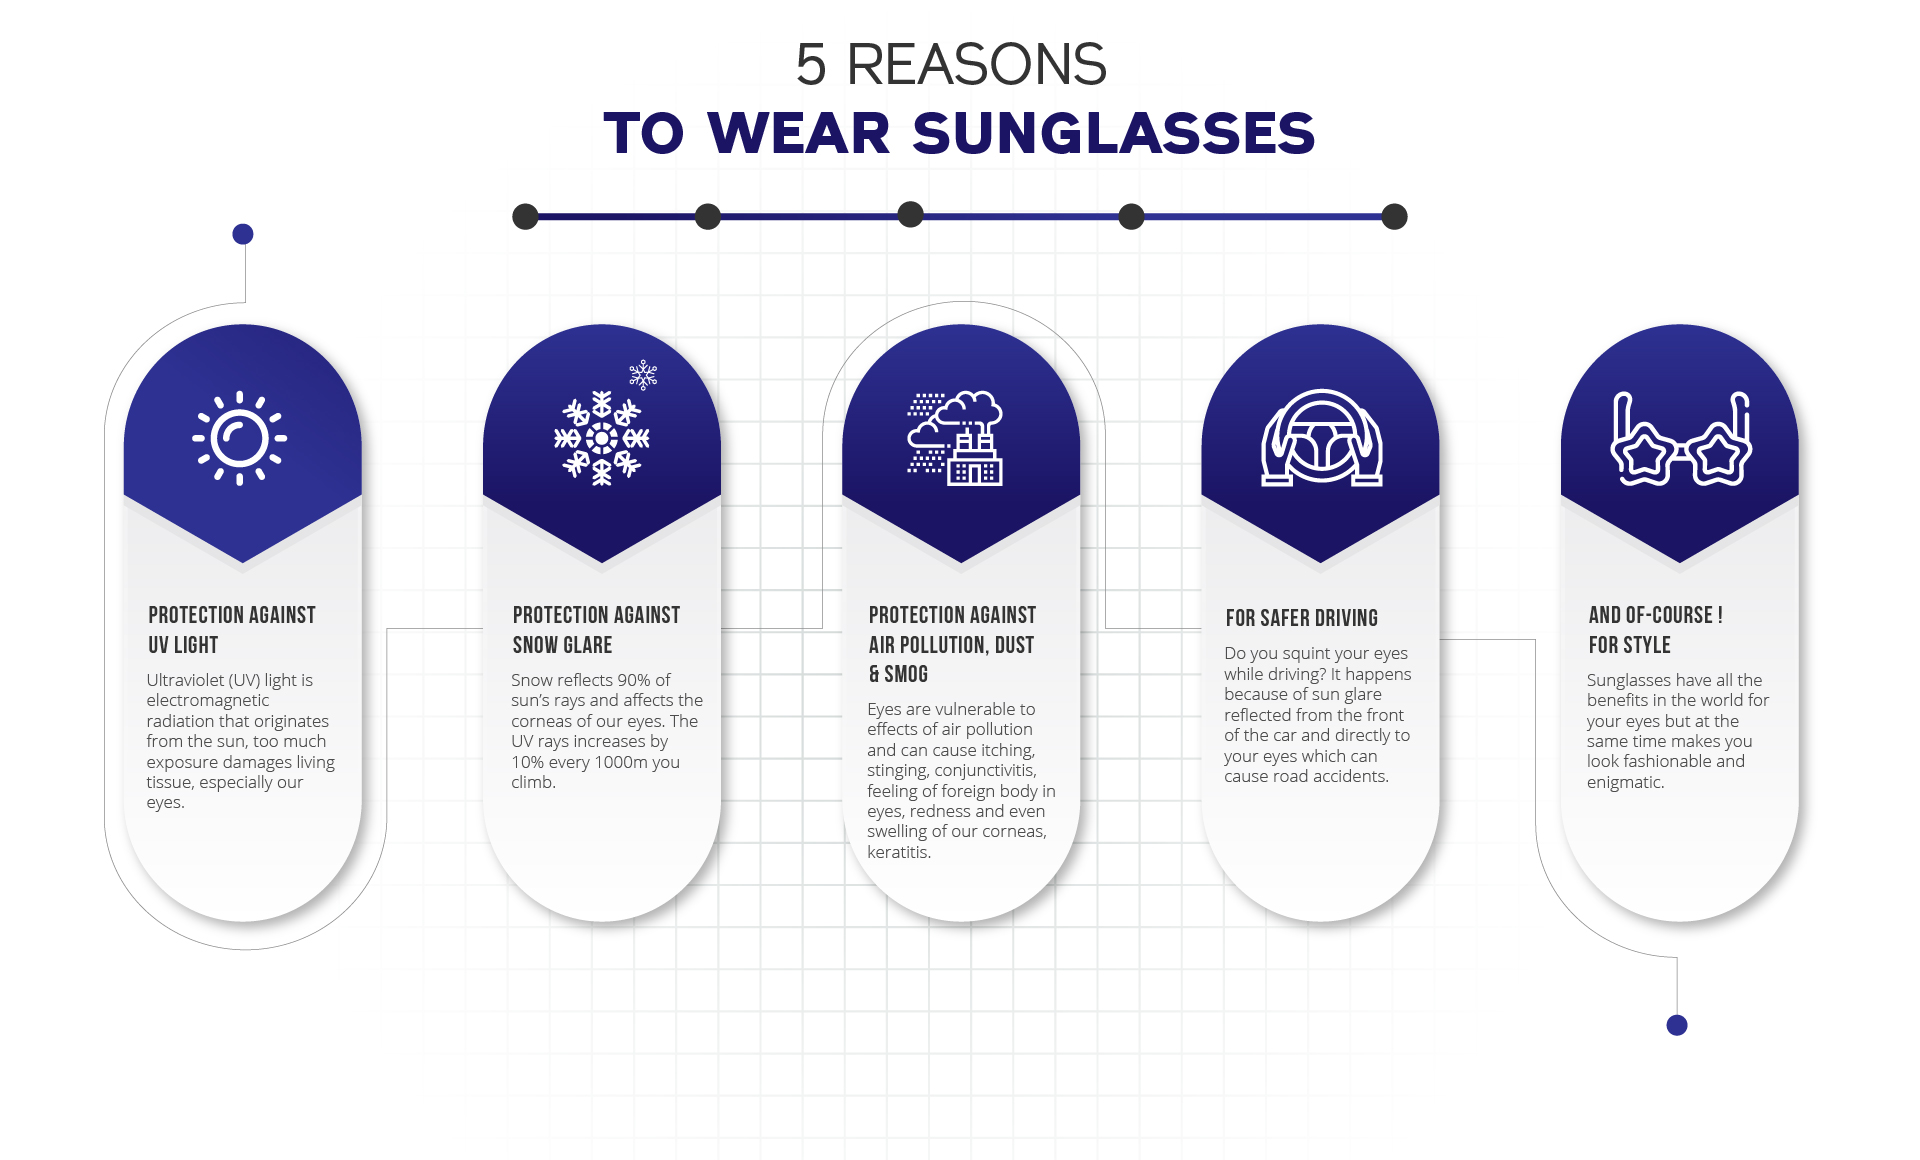 5 reasons to wear sunglasses